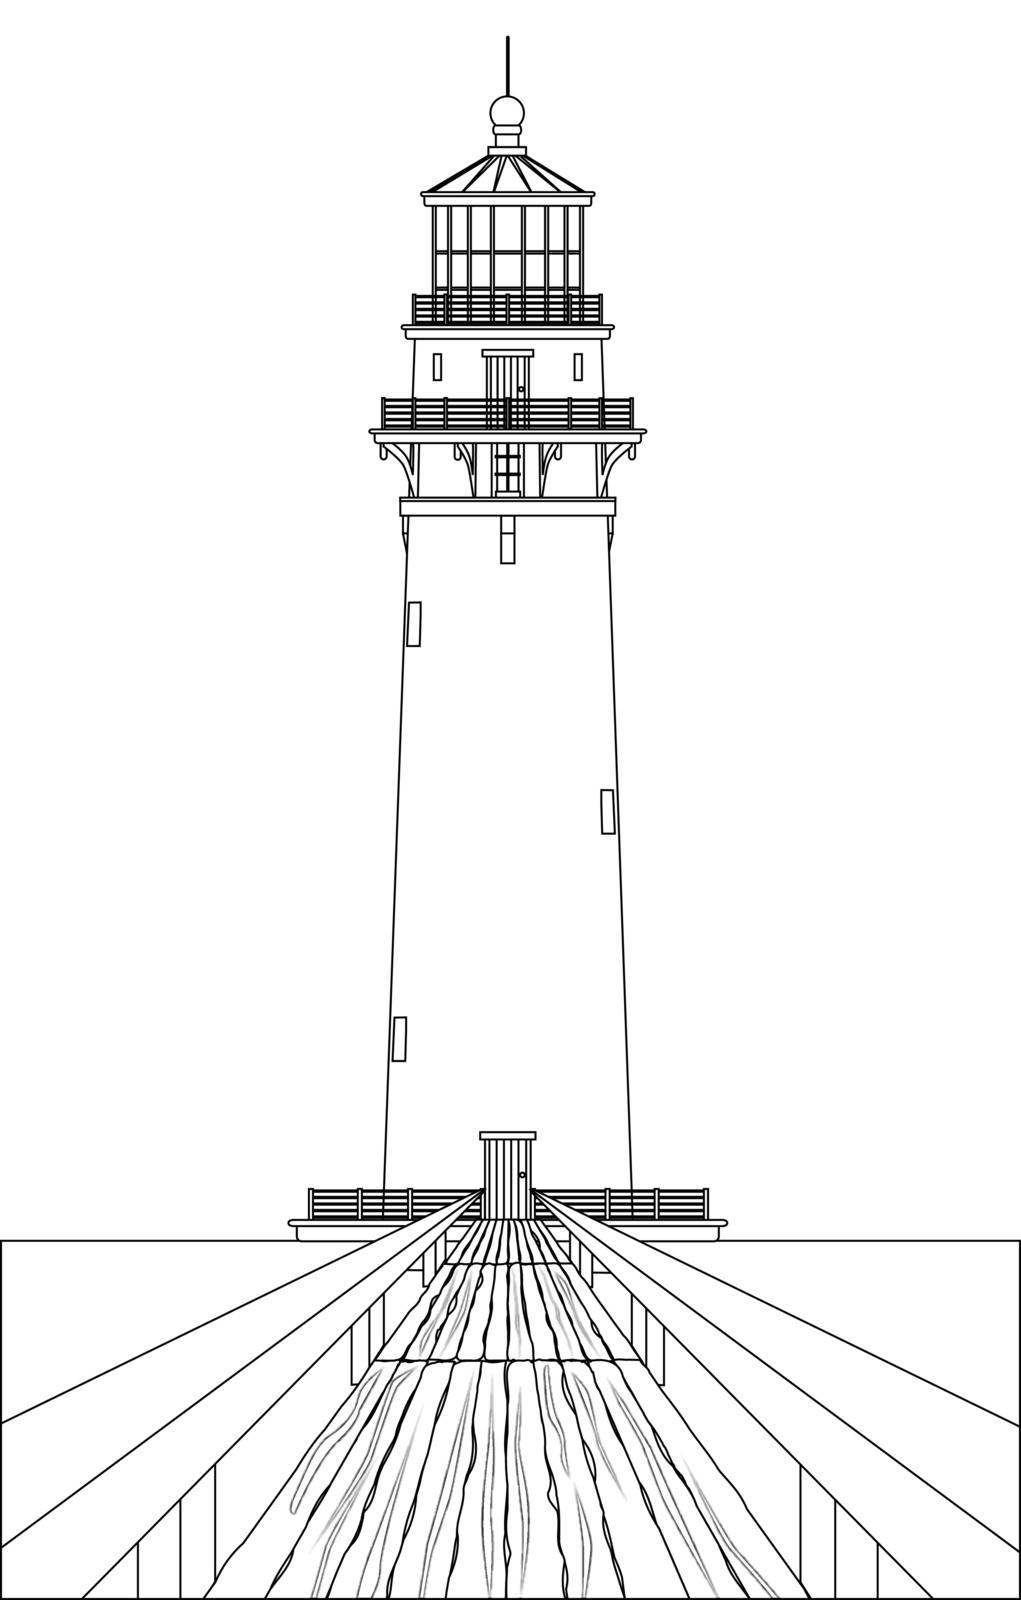 A lighthouse outline in clack and white and its well worn wooden footbridge.